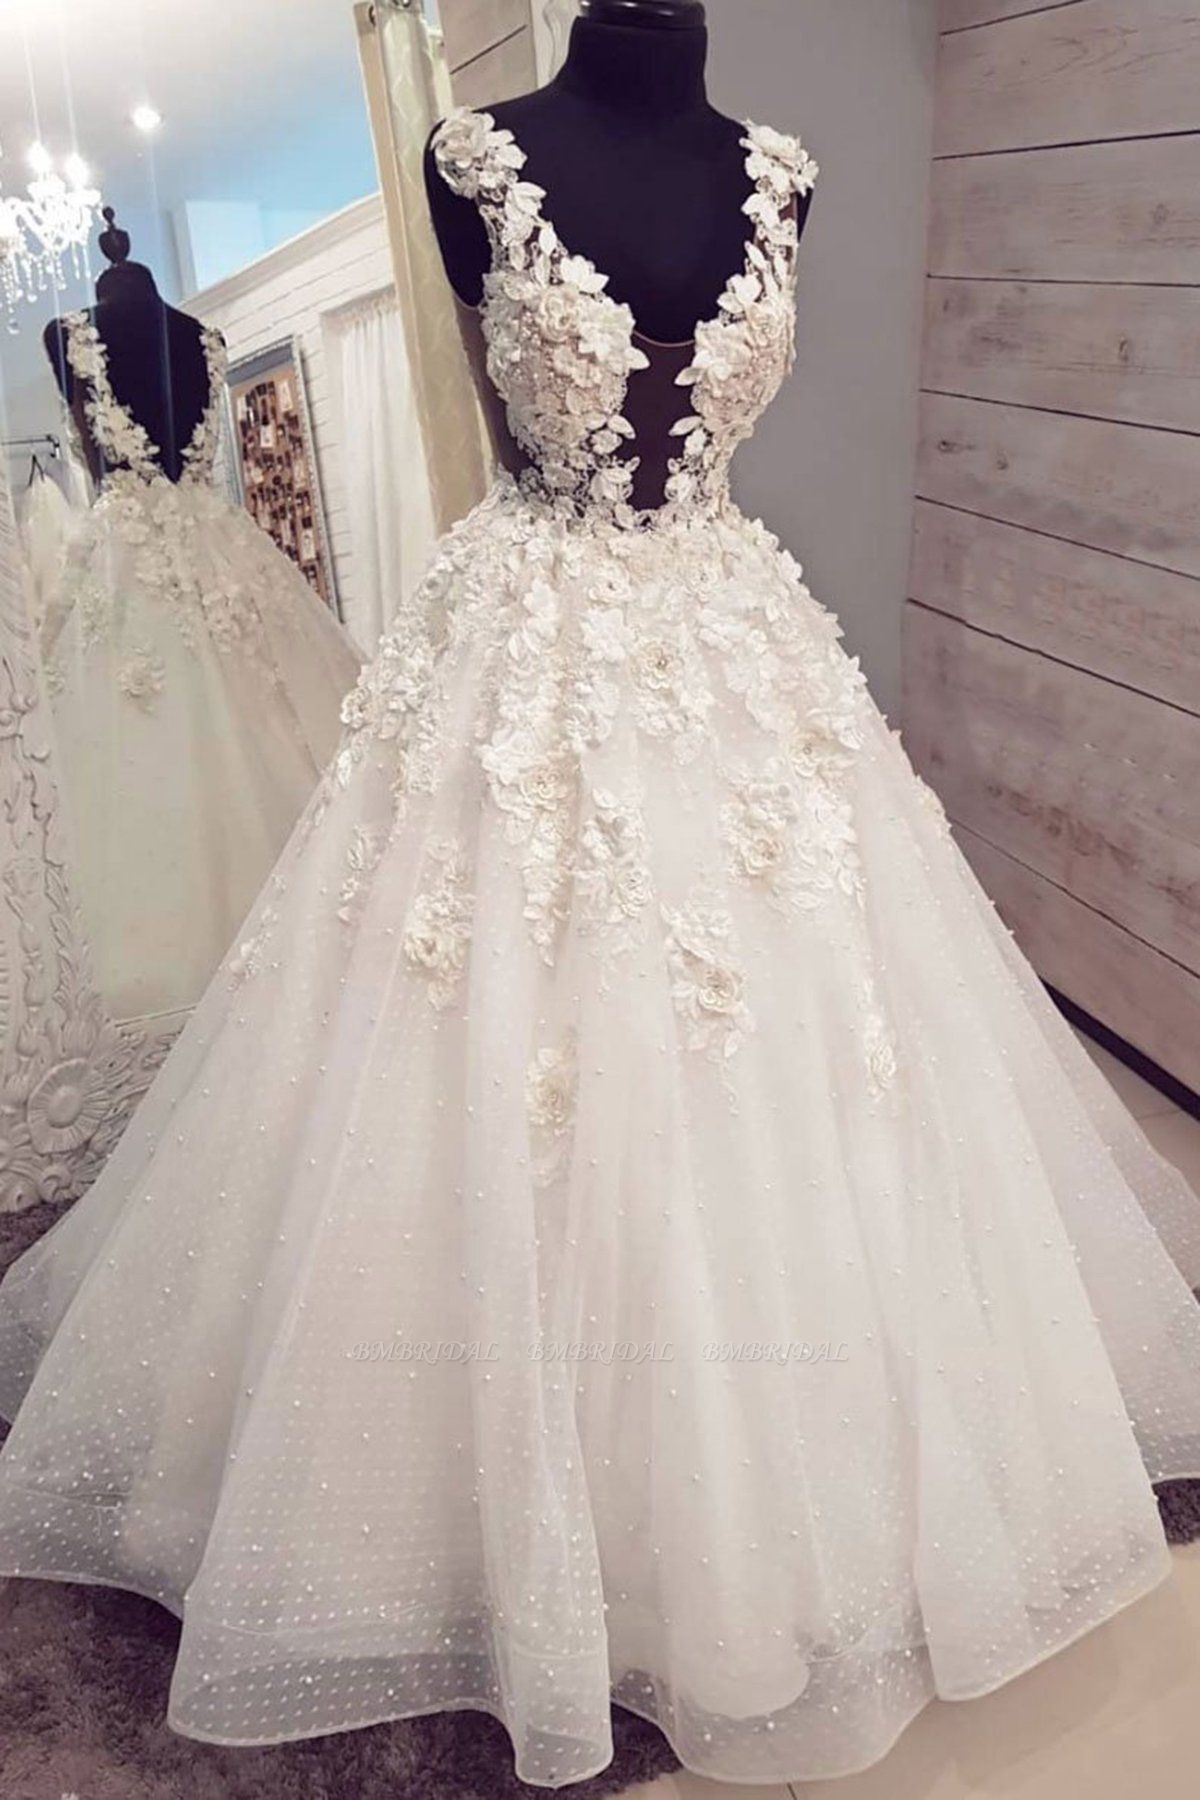 Chic White Tulle Long Halter Pearl White Wedding Dress 3D Lace Applique Bridal Gowns On Sale